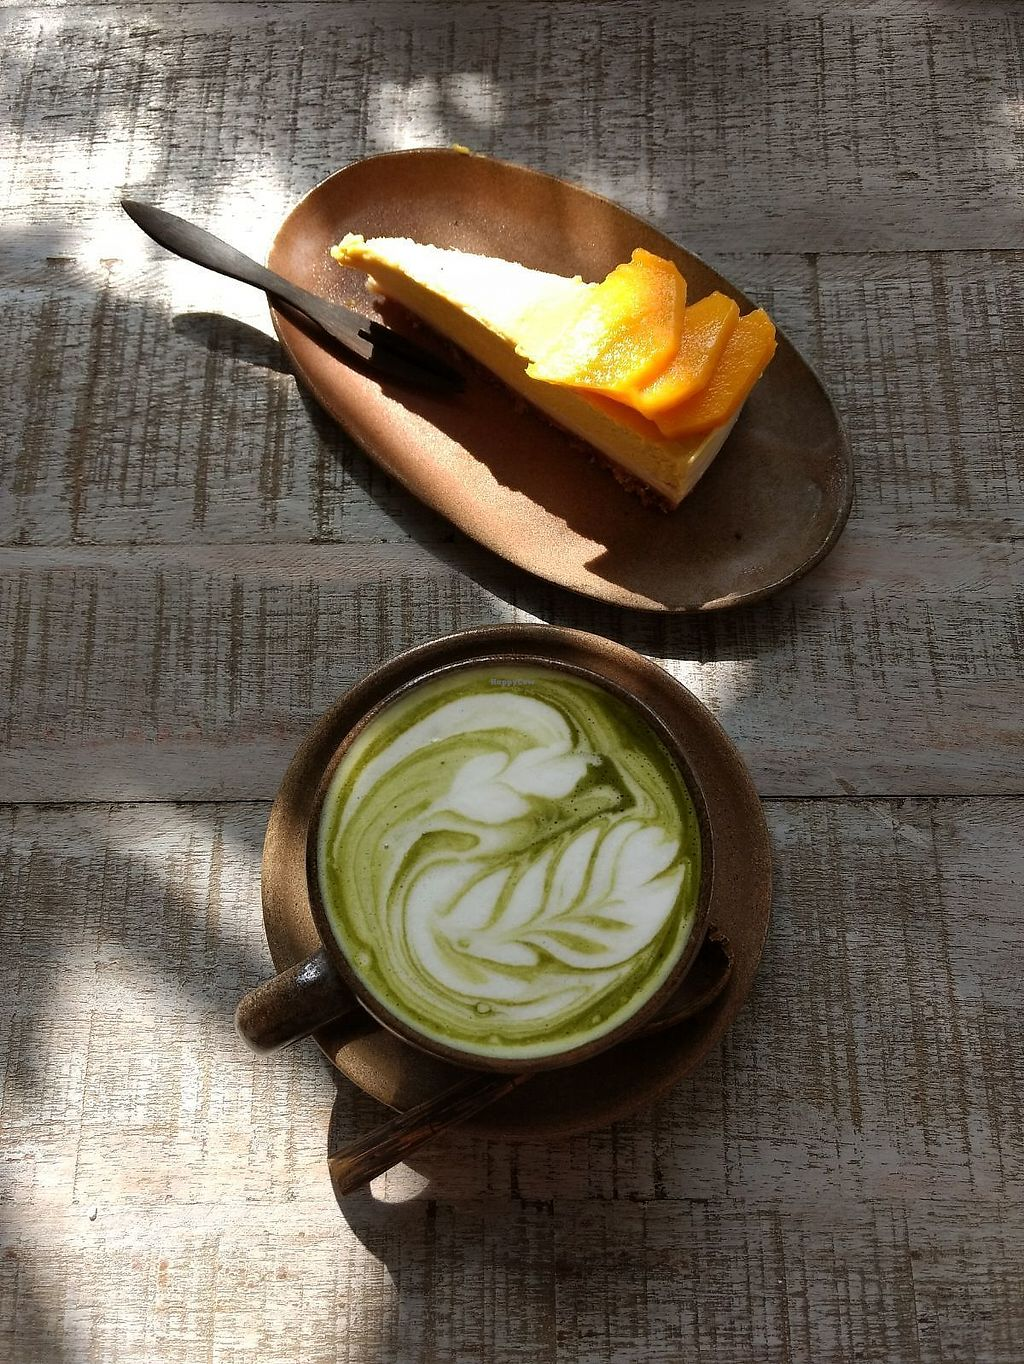 "Photo of Vibe Cafe  by <a href=""/members/profile/Kirsikkatuuli"">Kirsikkatuuli</a> <br/>Matcha latte and mango raw cake <br/> February 23, 2018  - <a href='/contact/abuse/image/90274/362709'>Report</a>"